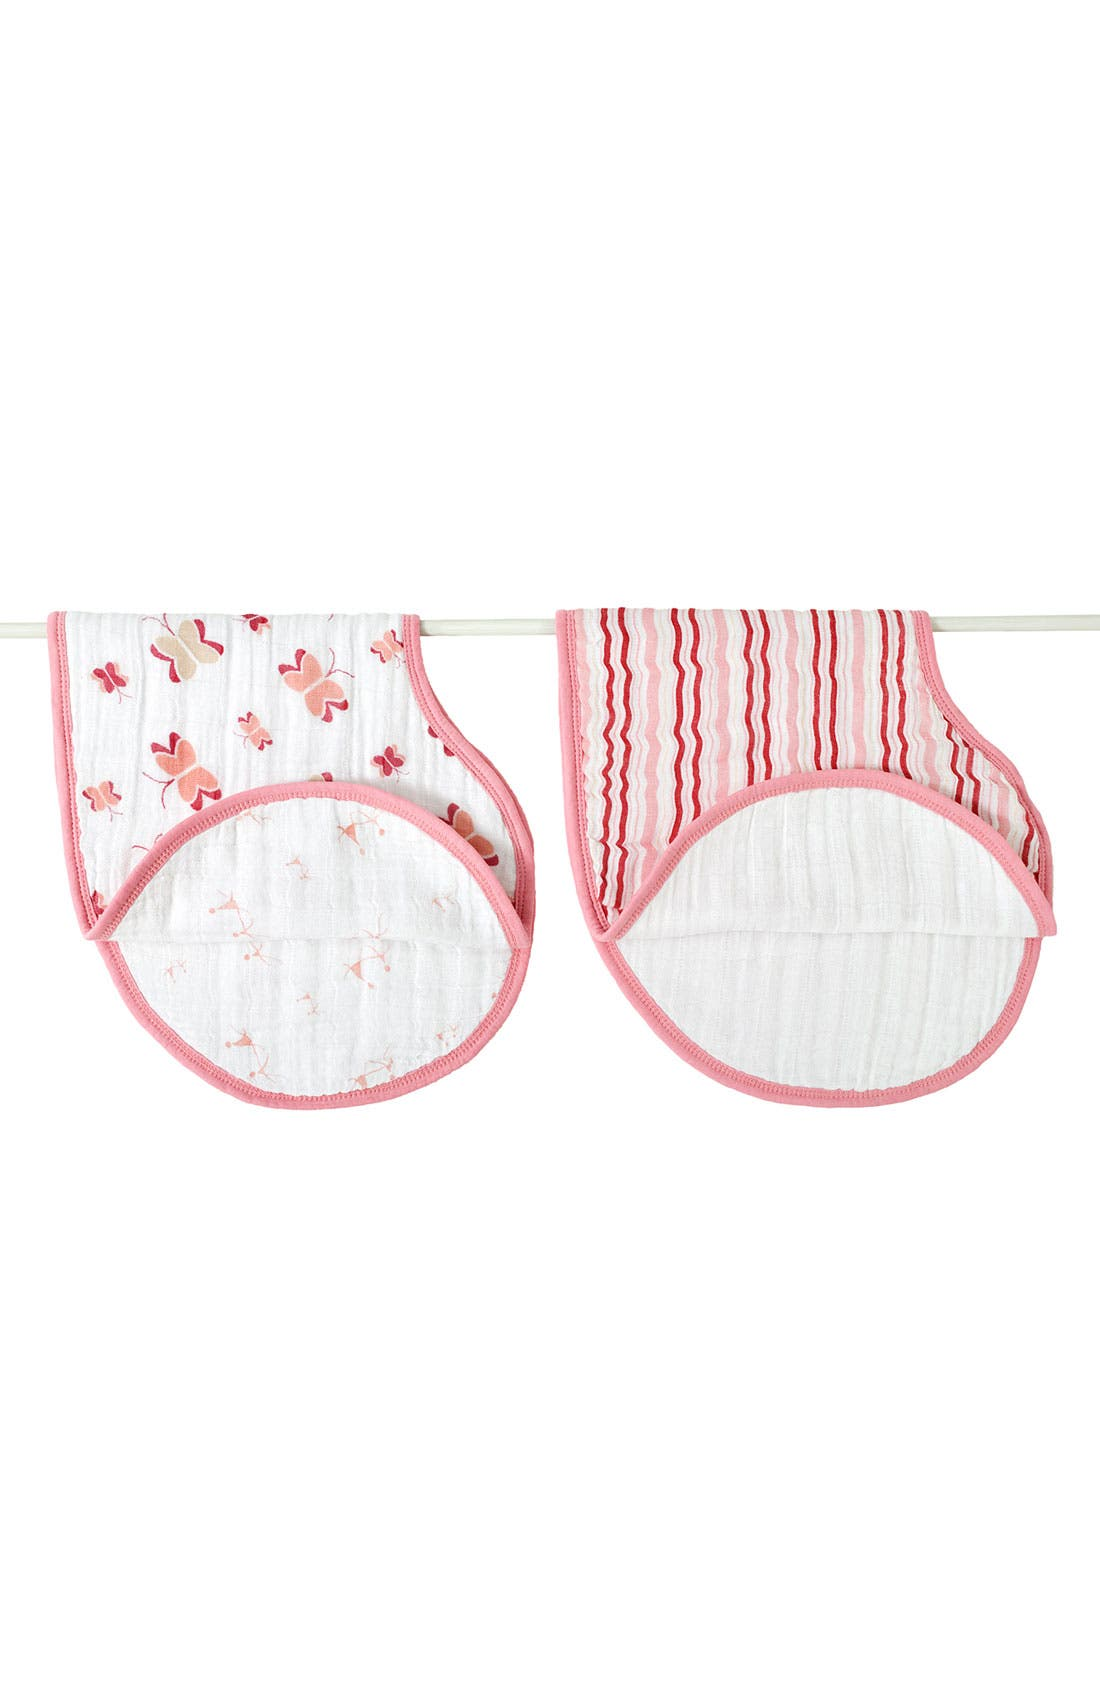 Alternate Image 1 Selected - aden + anais 2-Pack Classic Burpy Bibs